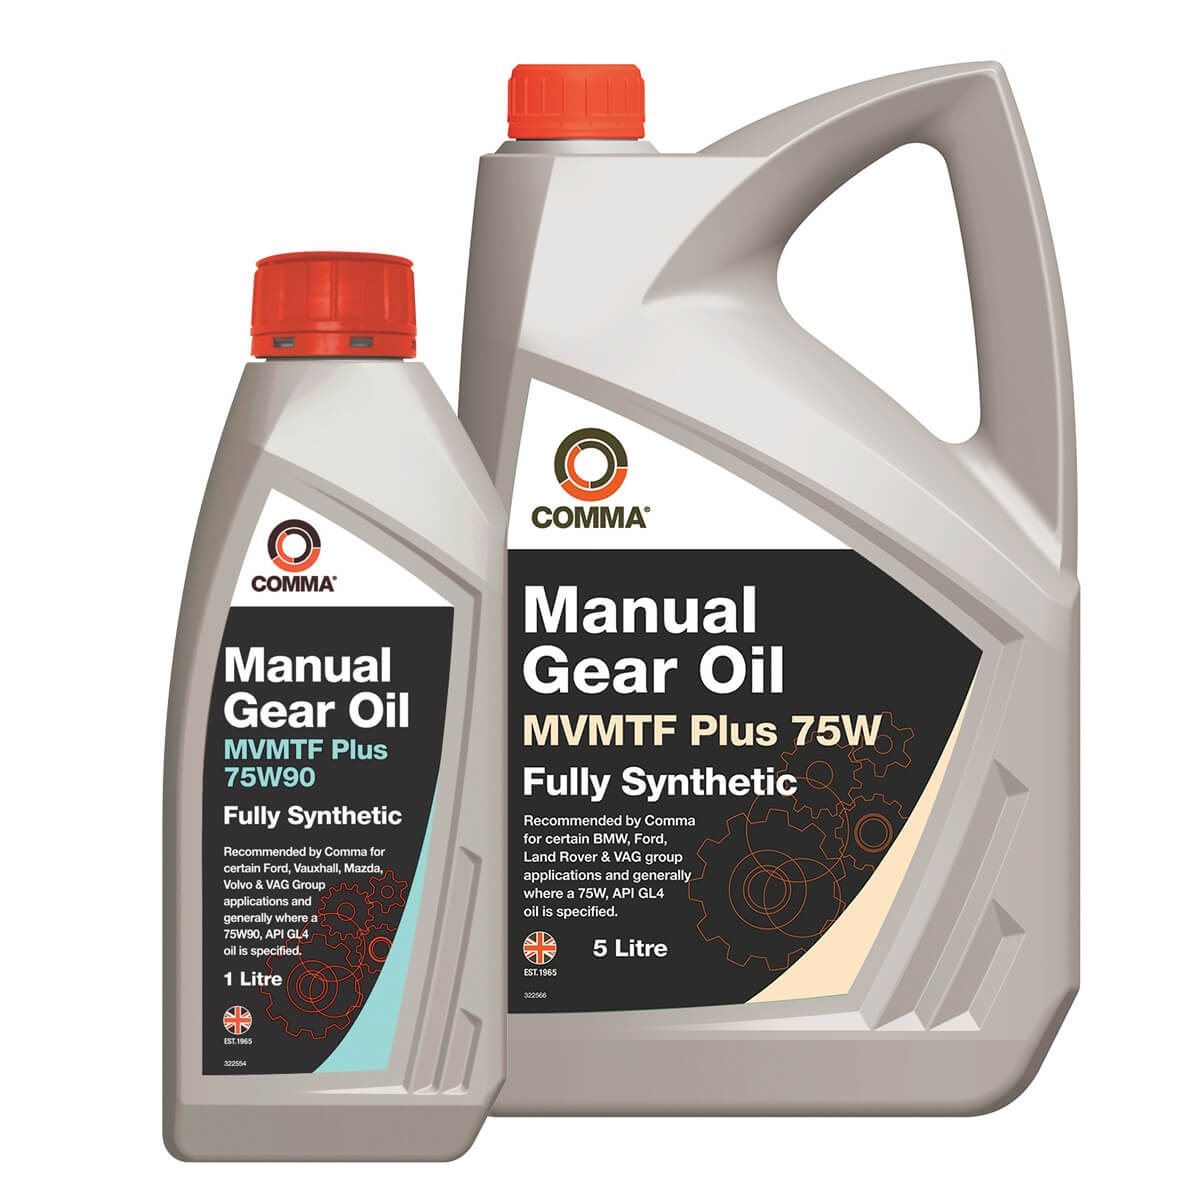 HYUNDAI PONY/EXCEL Manual Transmission Oil